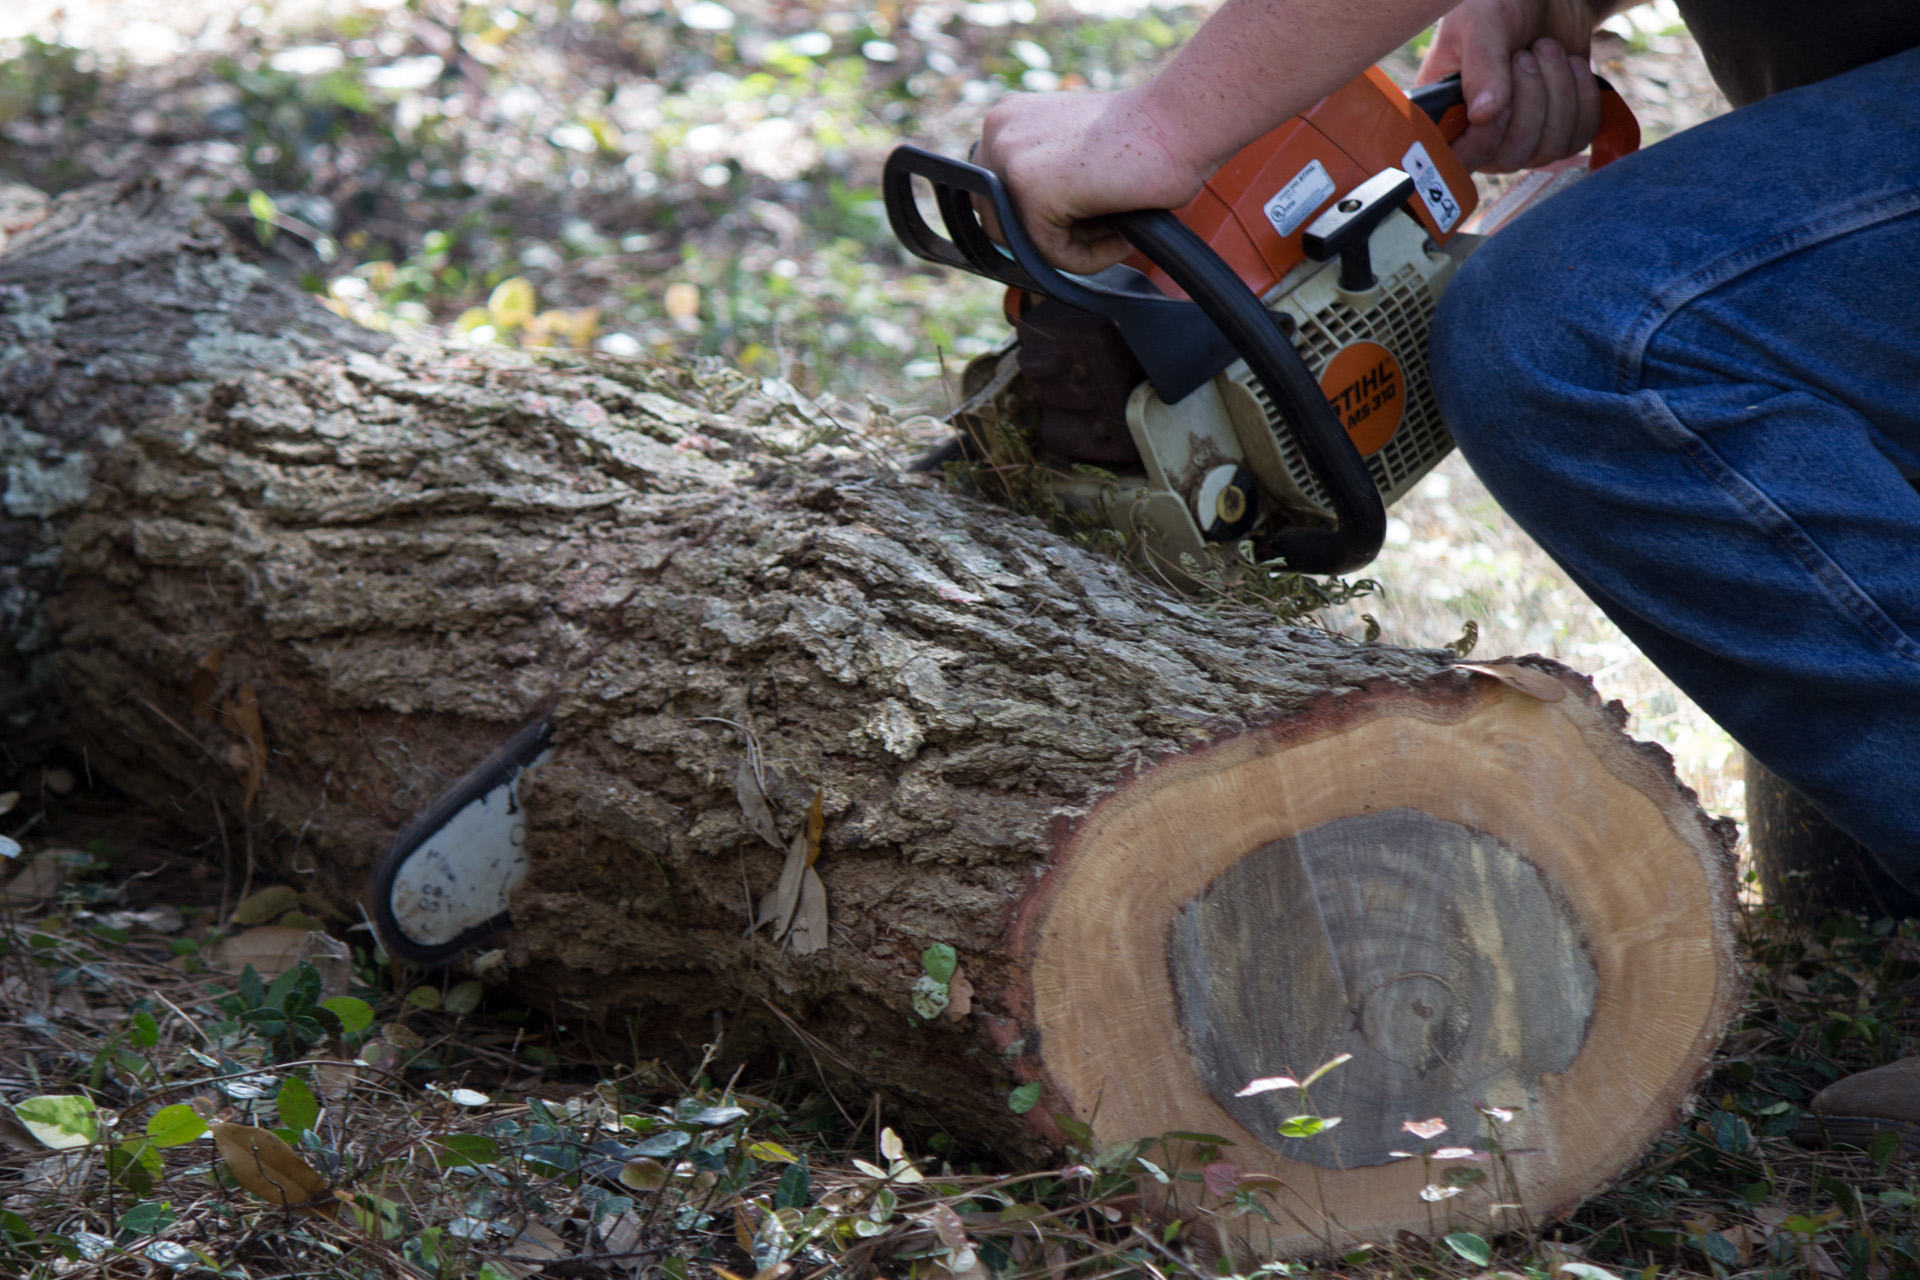 Nassau County Tree Surgeons - Local Arborists